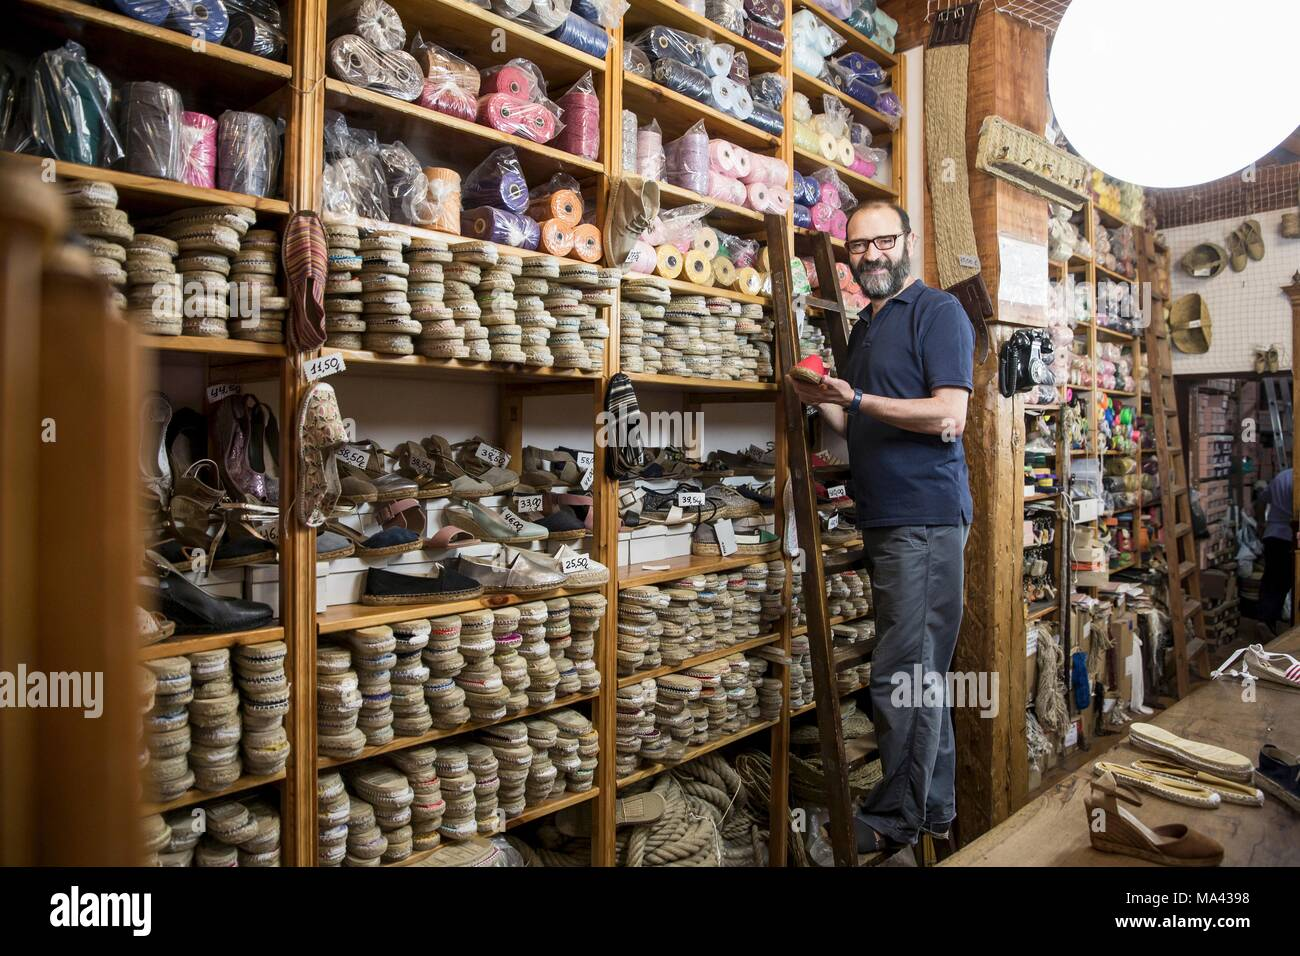 Jes s hernanz the owner of casa hernanz a shoe shop for espadrilles in madrid spain stock - Casa hernanz madrid ...